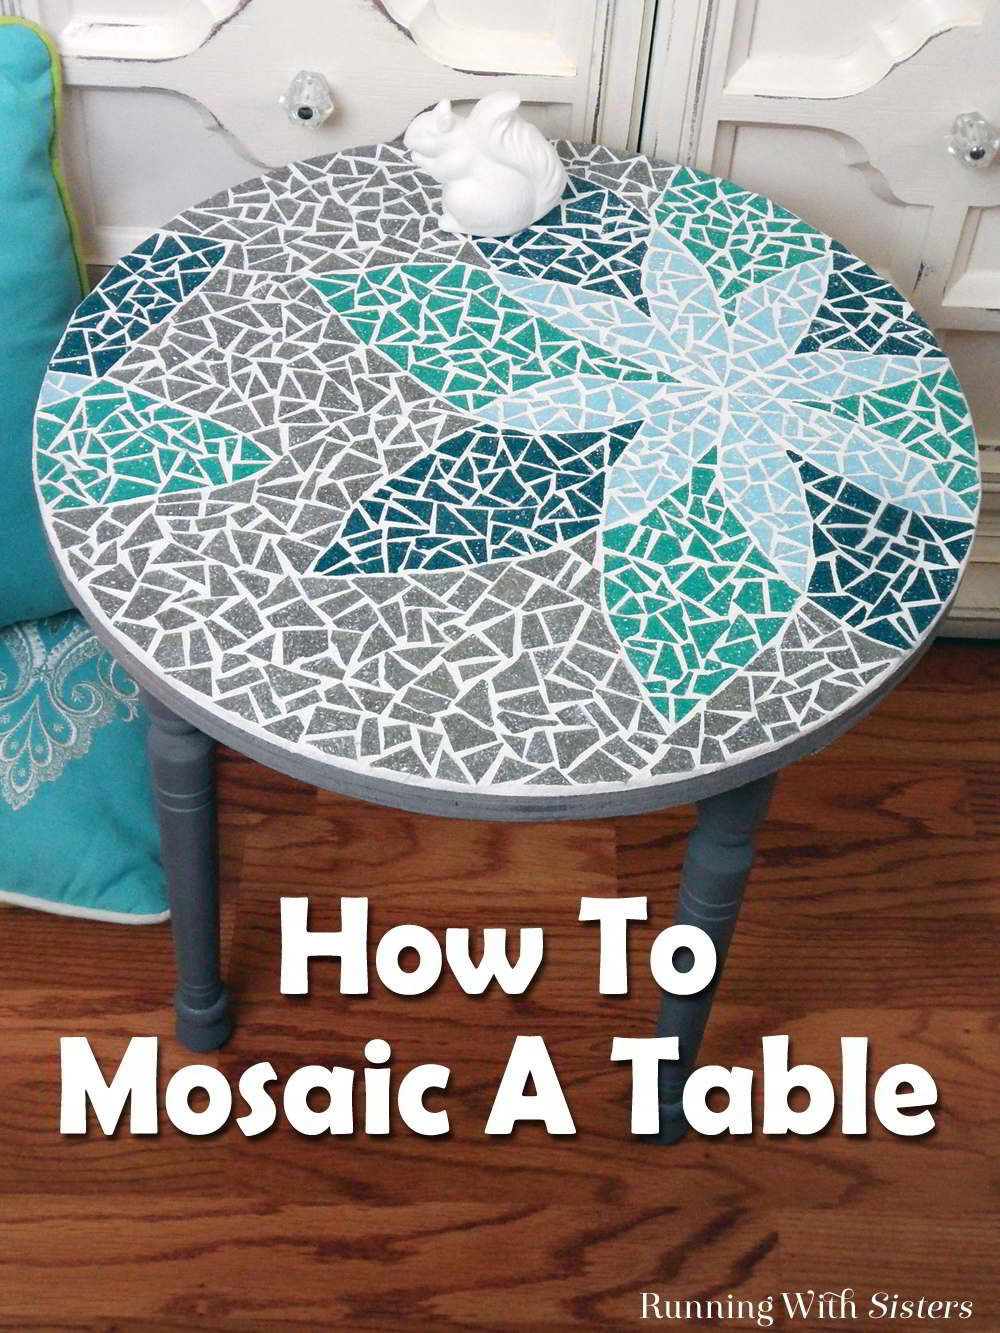 How To Mosaic A Table Grout Mosaics And Template